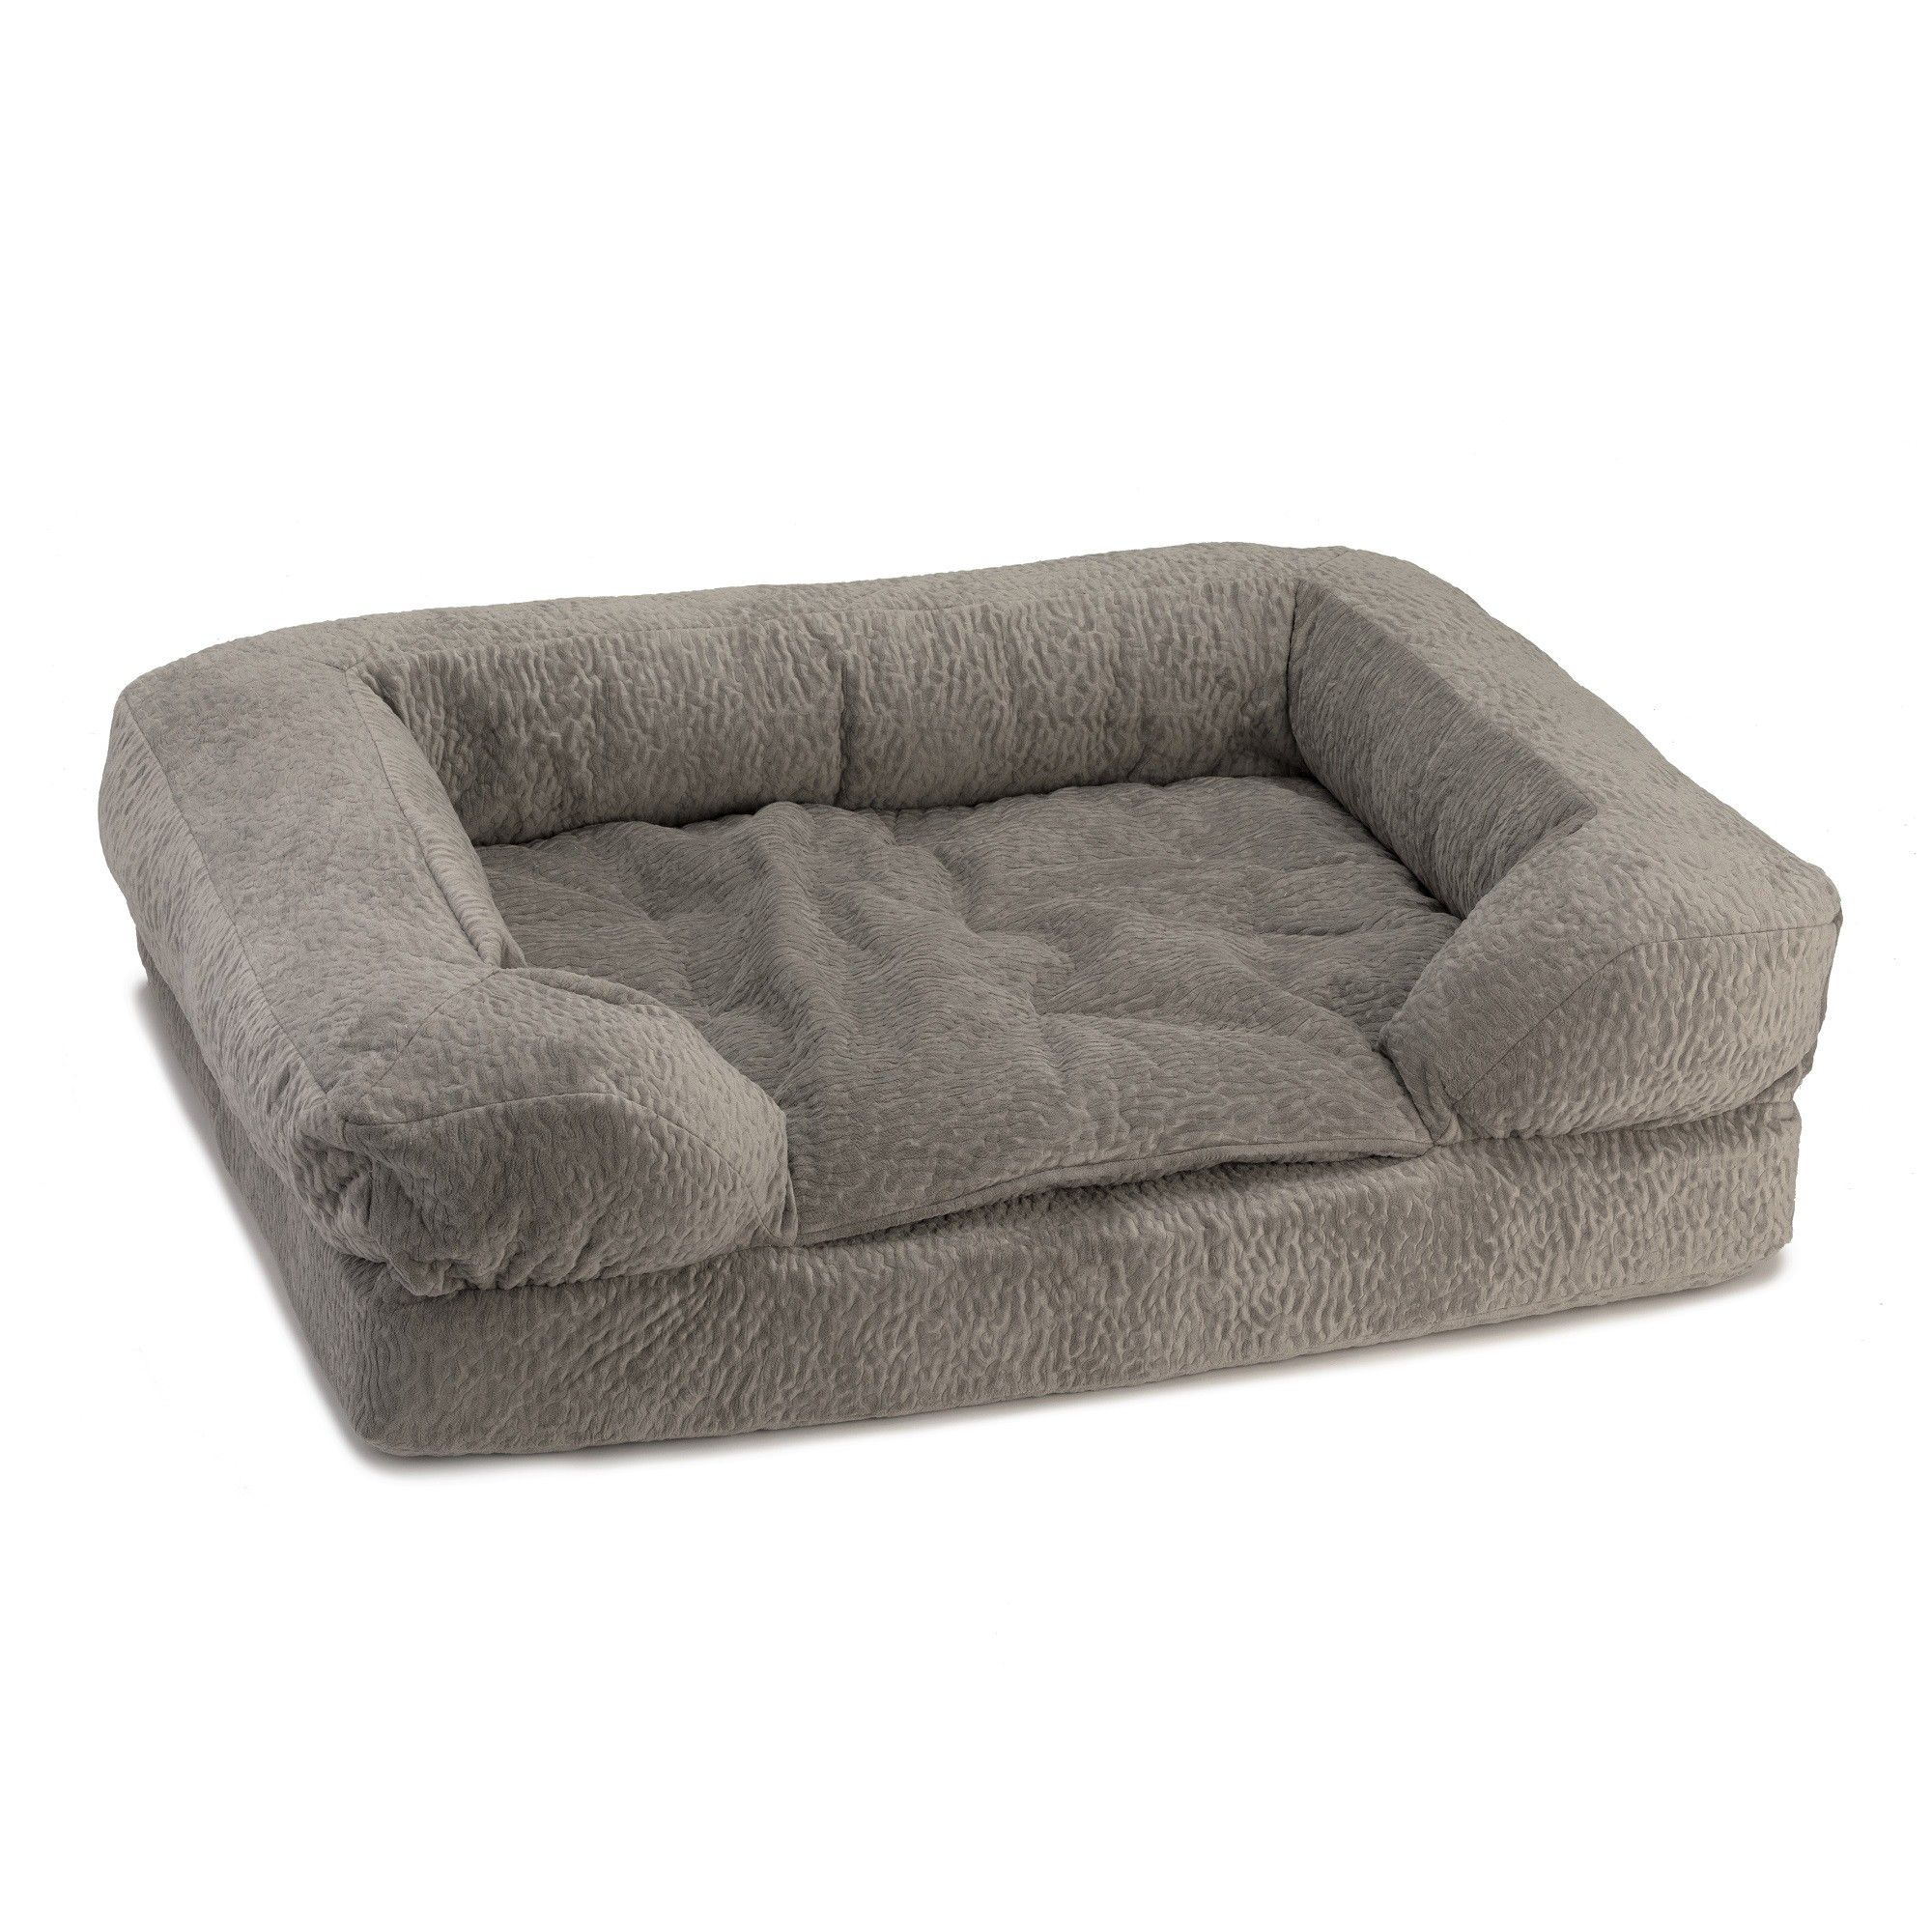 Snoozer 69769 Premium Pet Dog Sofa Medium